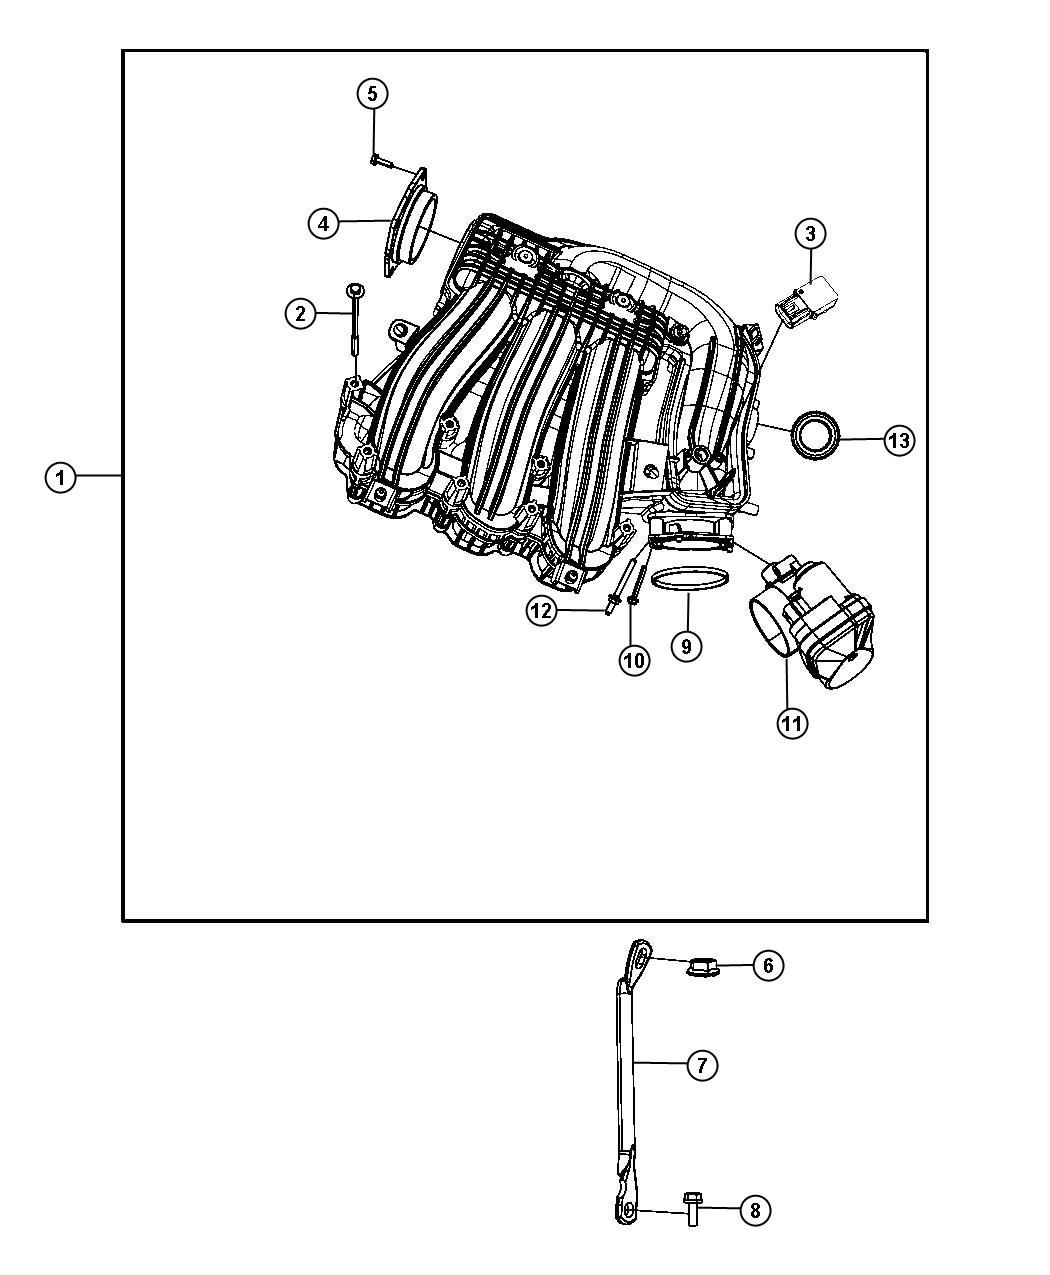 Service manual [2008 Ford Edge Intake Manifold Removal